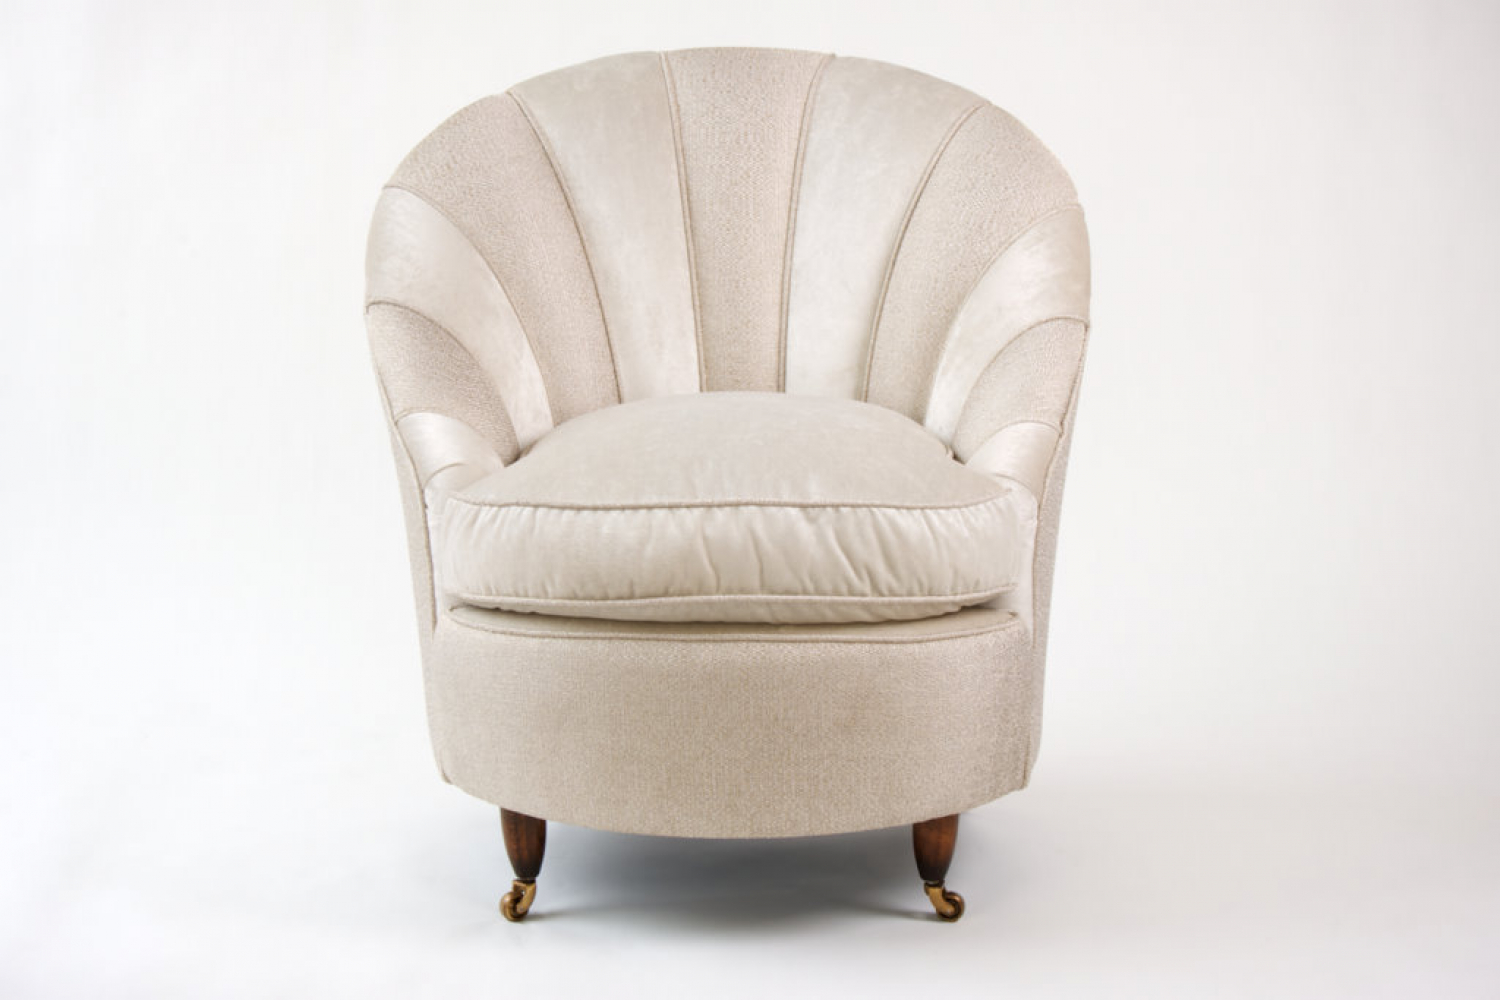 Art Deco Shell Chair